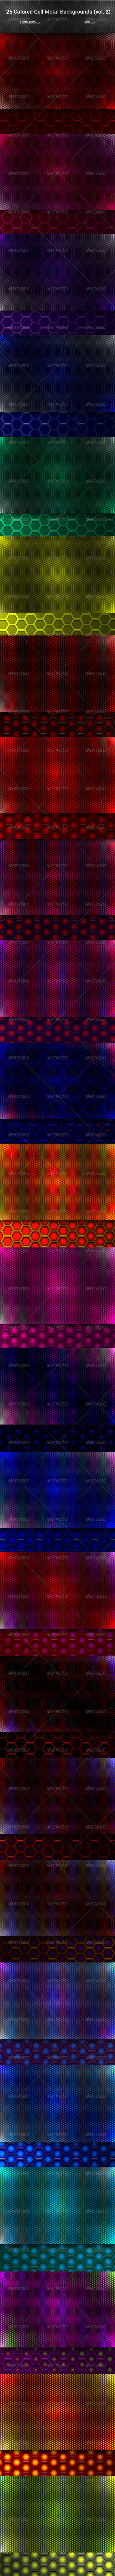 GraphicRiver Colored Cell Metal Backgrouds Set vol 2 8087625